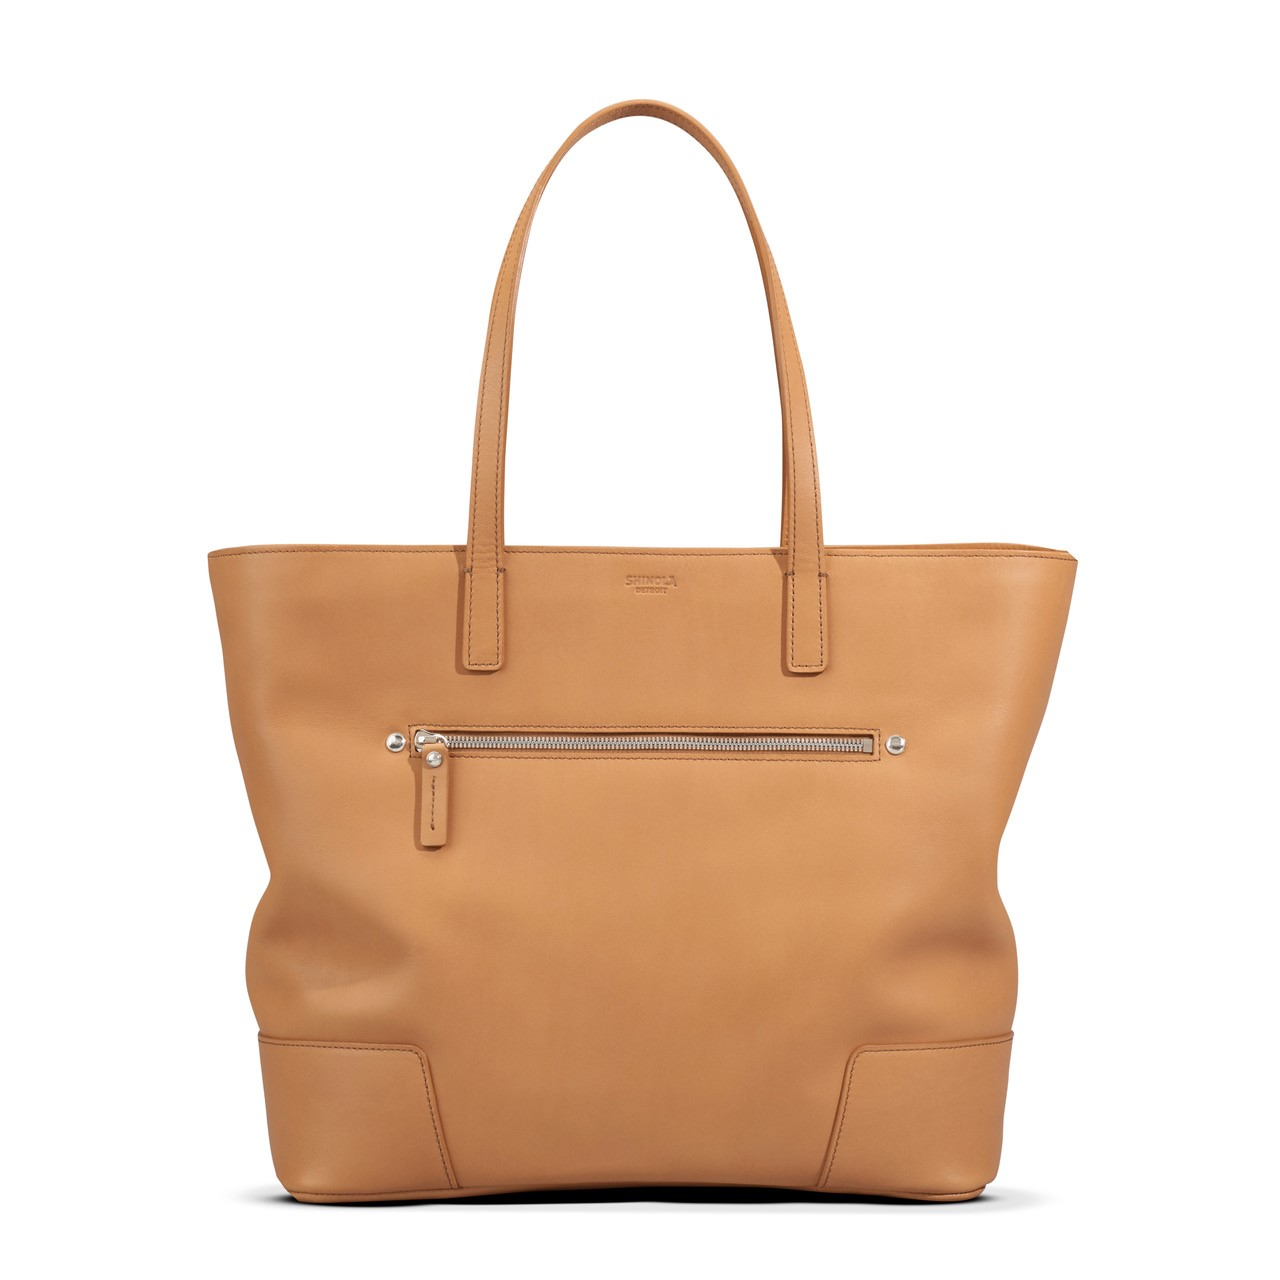 Shinola Nappa Zip Shoulder Tote in Camel  // Price: $895 // Purchase at Shinola.com  // (Photo: Shinola)